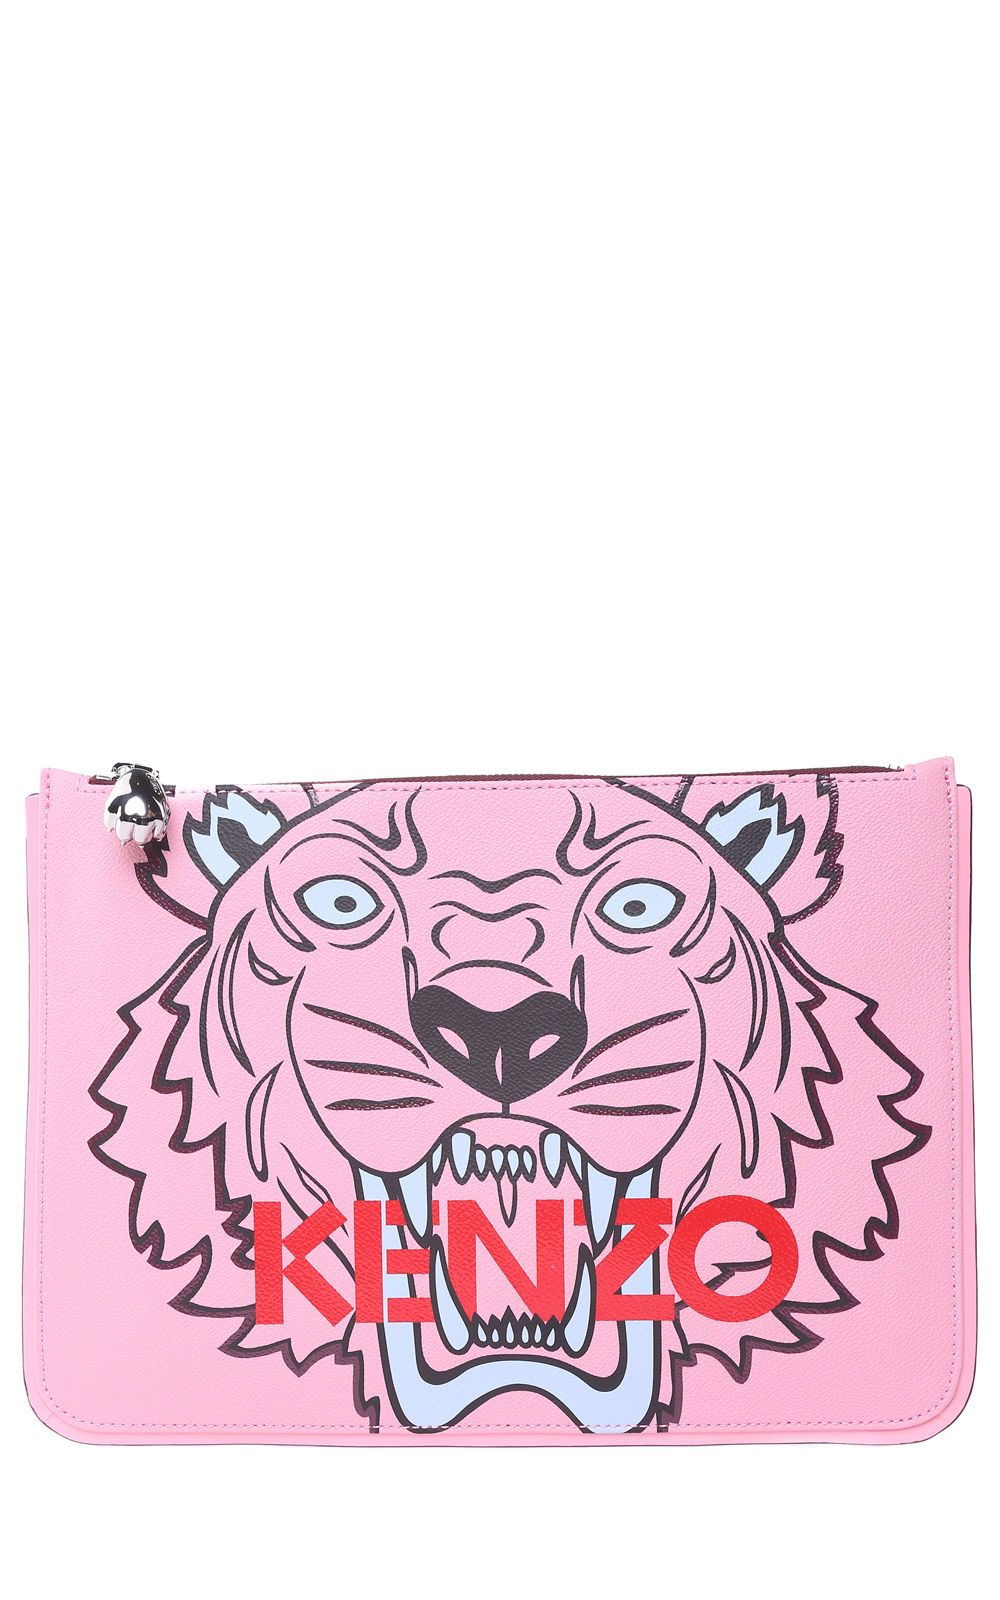 Kenzo Kenzo Tiger A4 Faux-leather Clutch